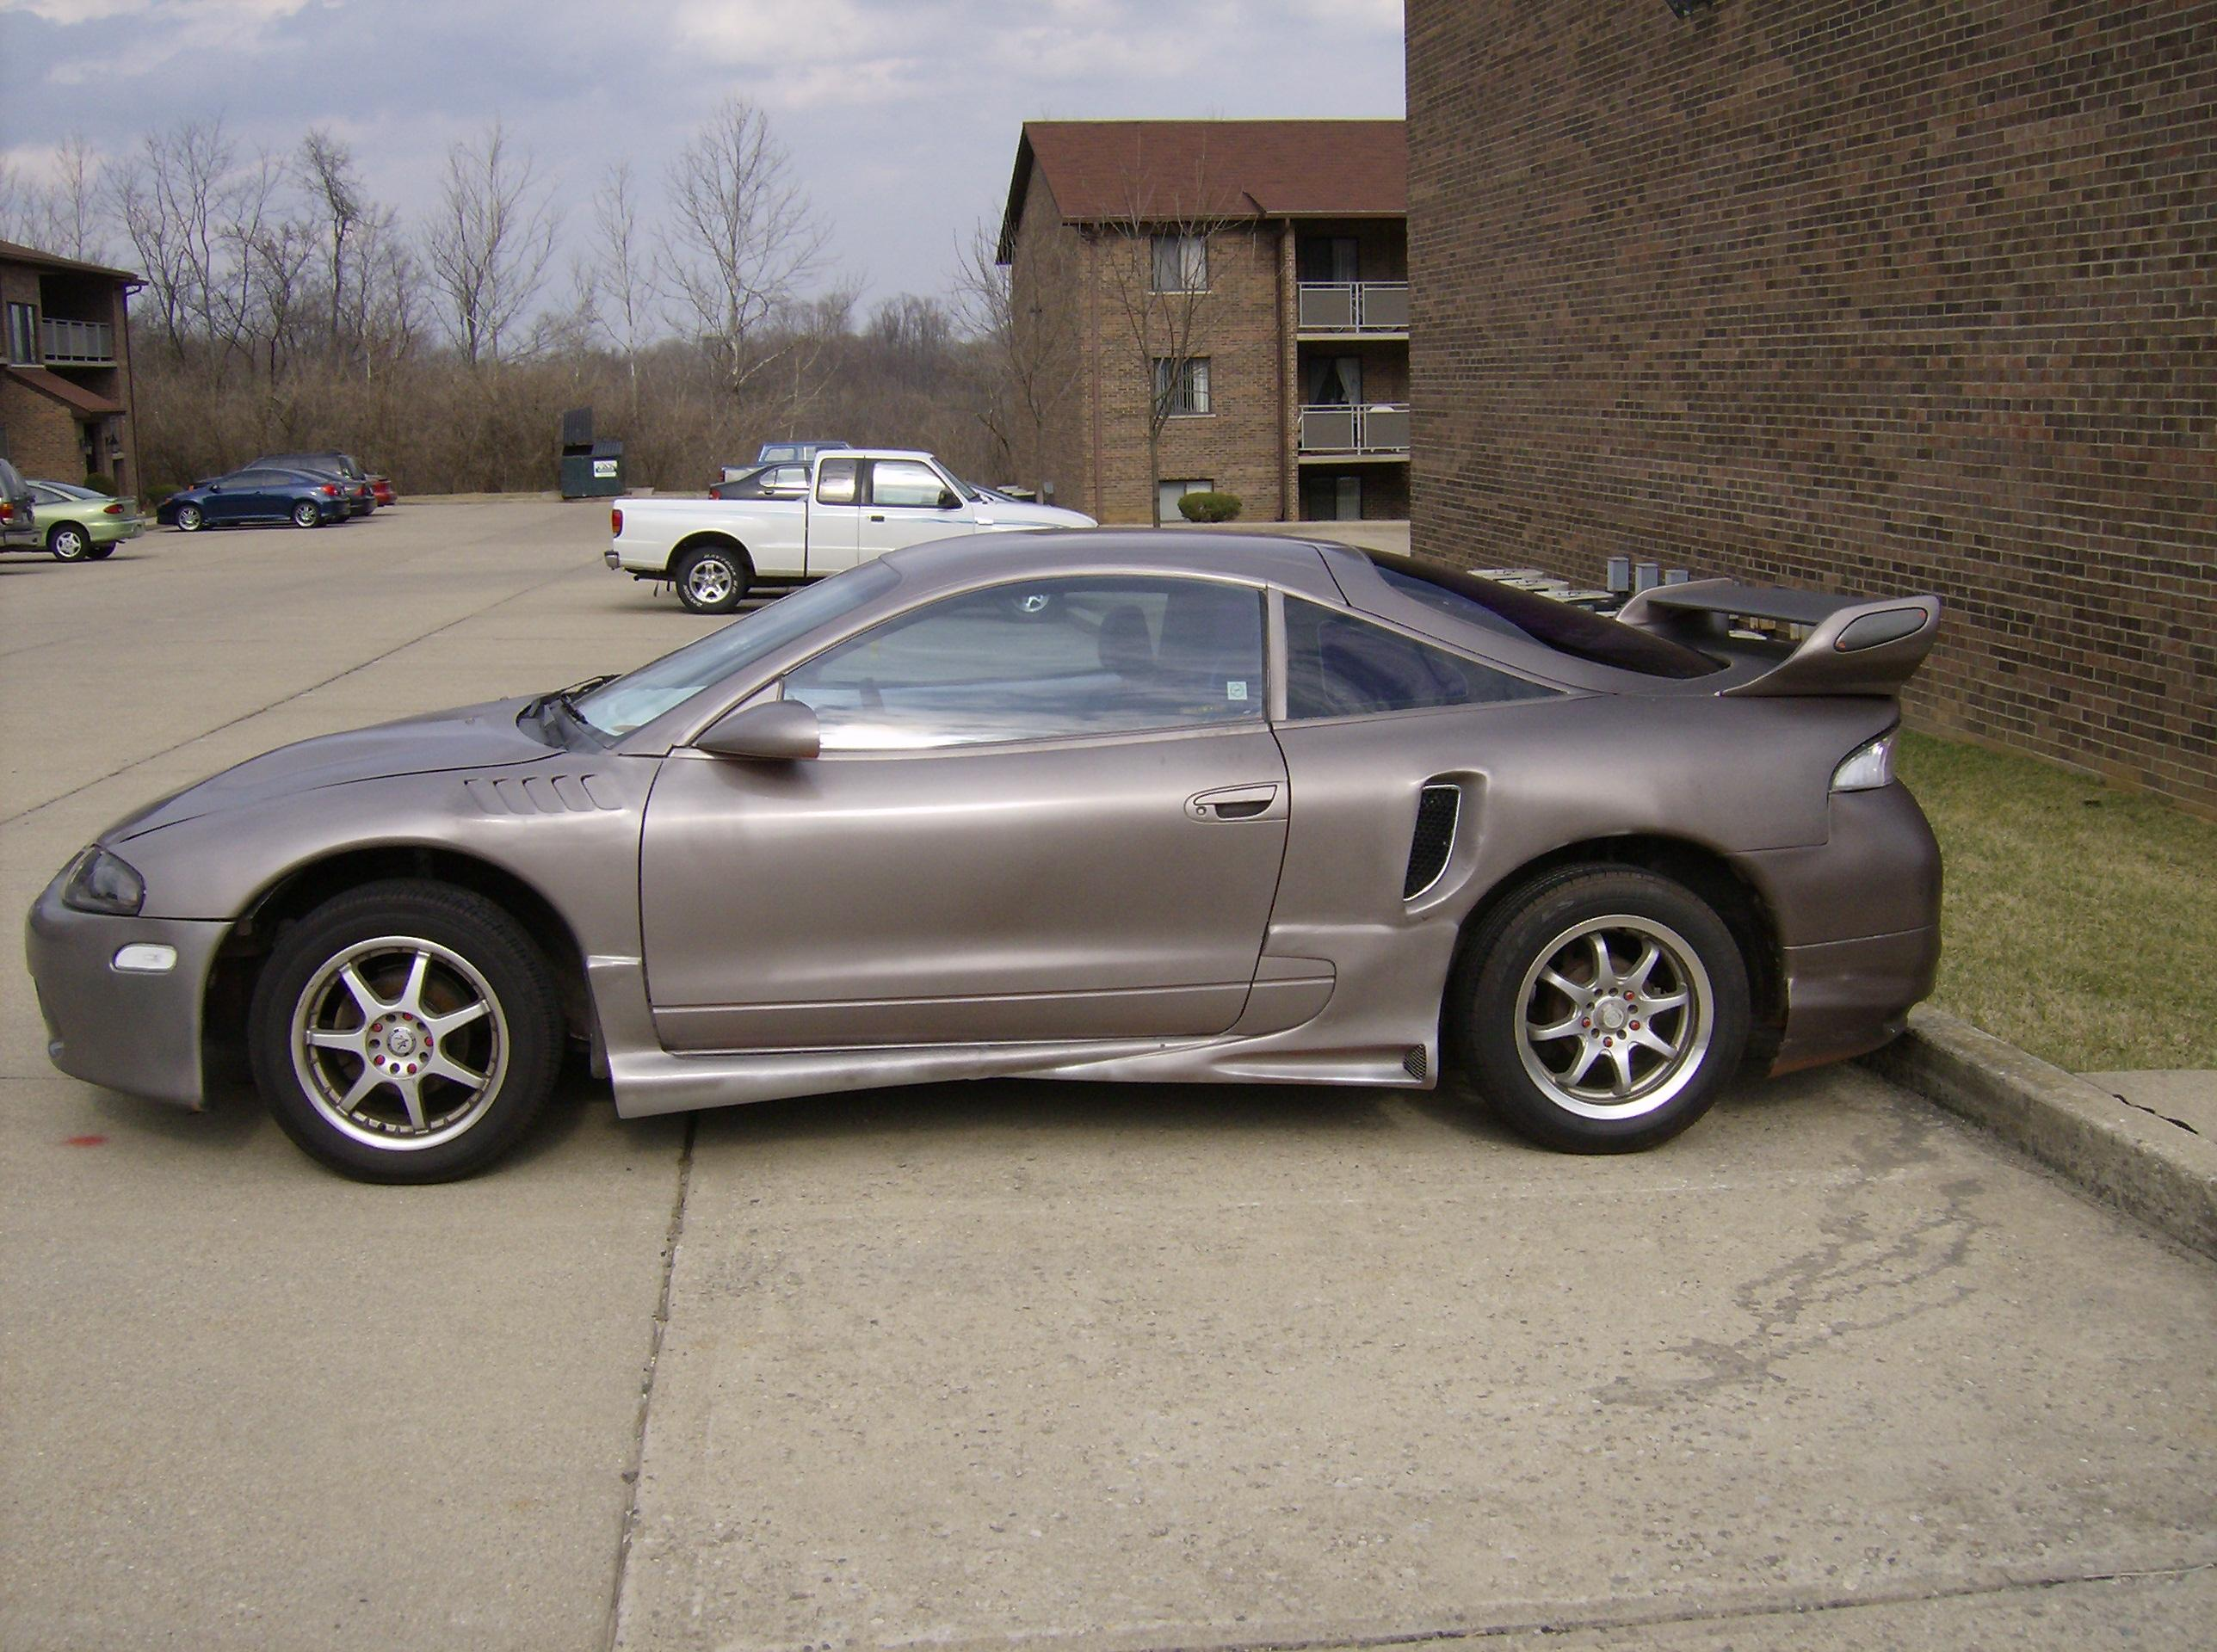 tunedoutmike7 39 s 1995 mitsubishi eclipse rs coupe 2d in. Black Bedroom Furniture Sets. Home Design Ideas